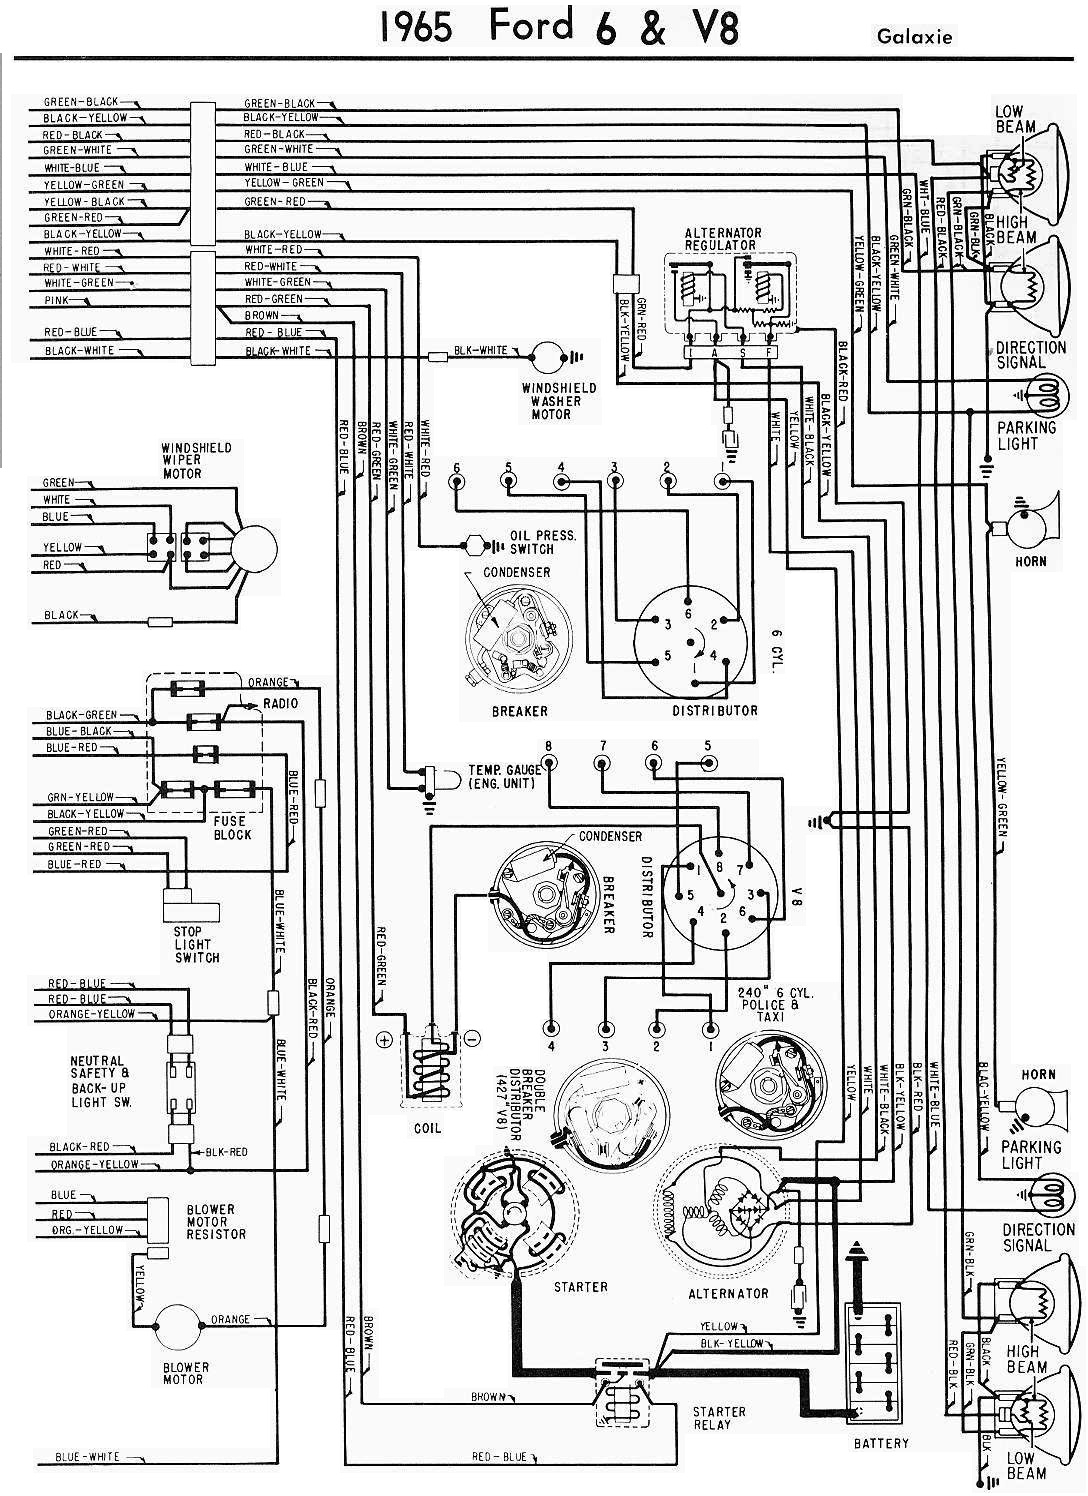 Wiring Connection Diagram Viper 4115v Remote Start 1965 Ford Galaxie Complete Electrical Part